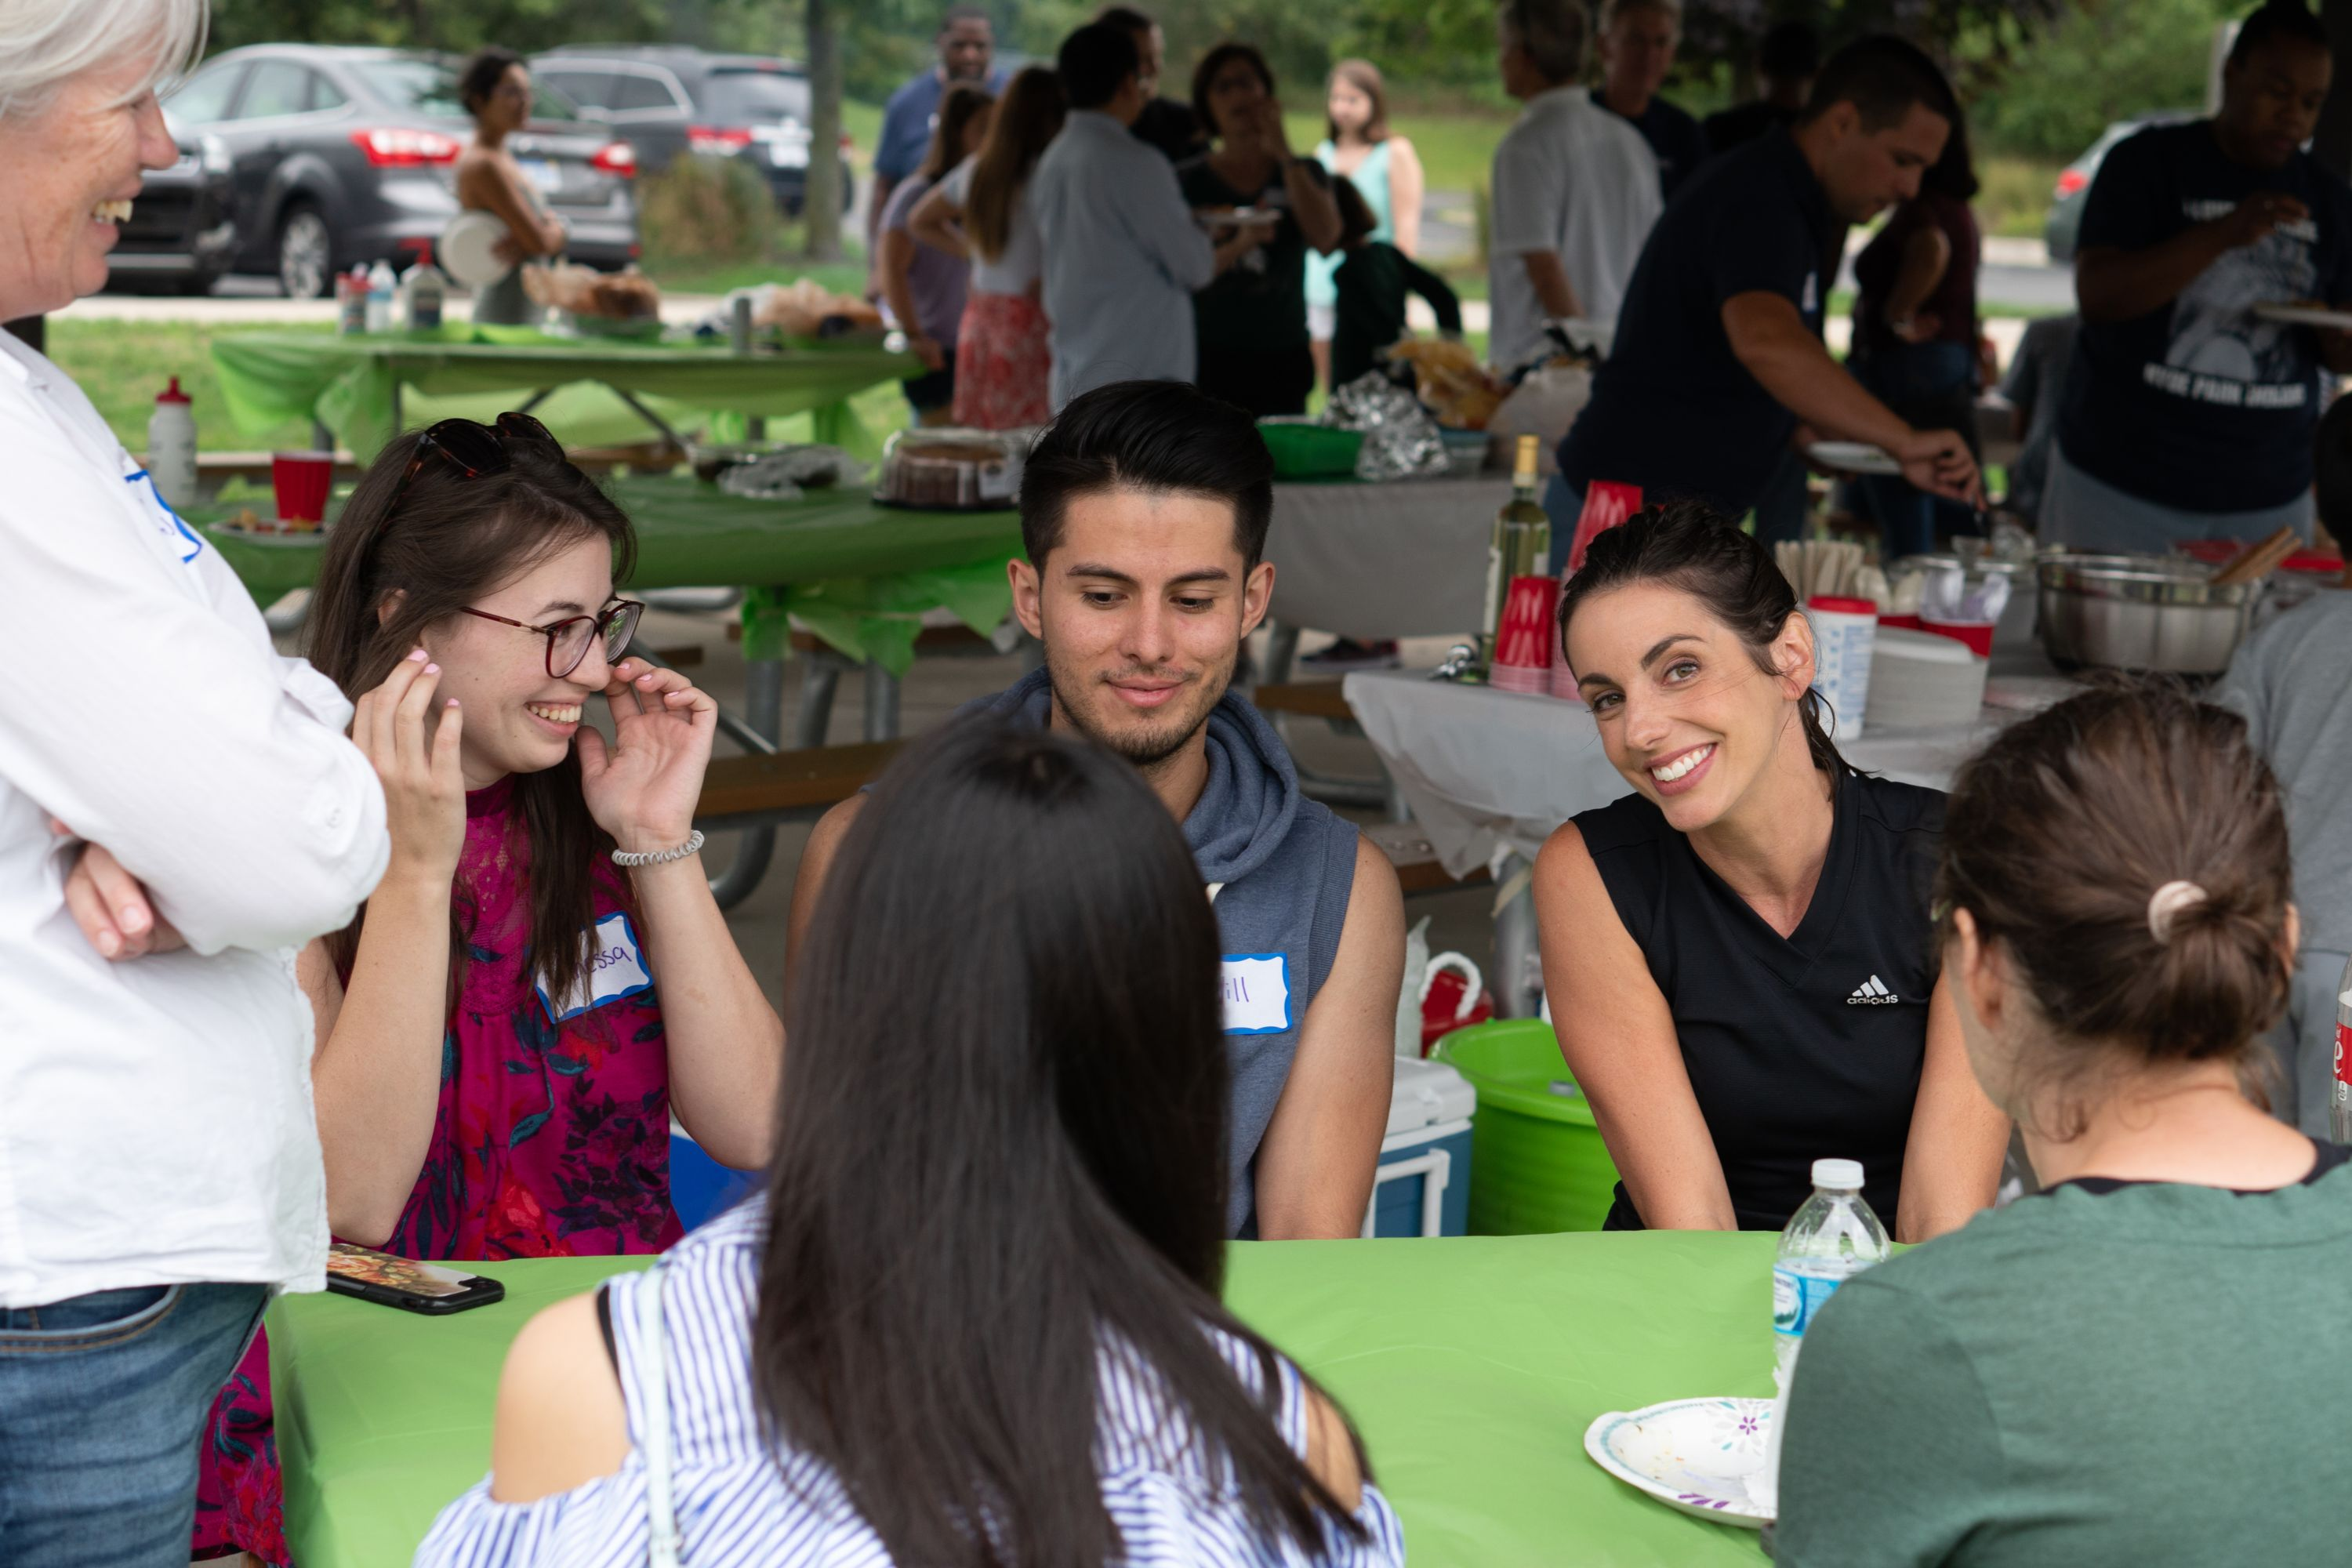 Michigan State University Department of Pharmacology and Toxicology Picnic photo